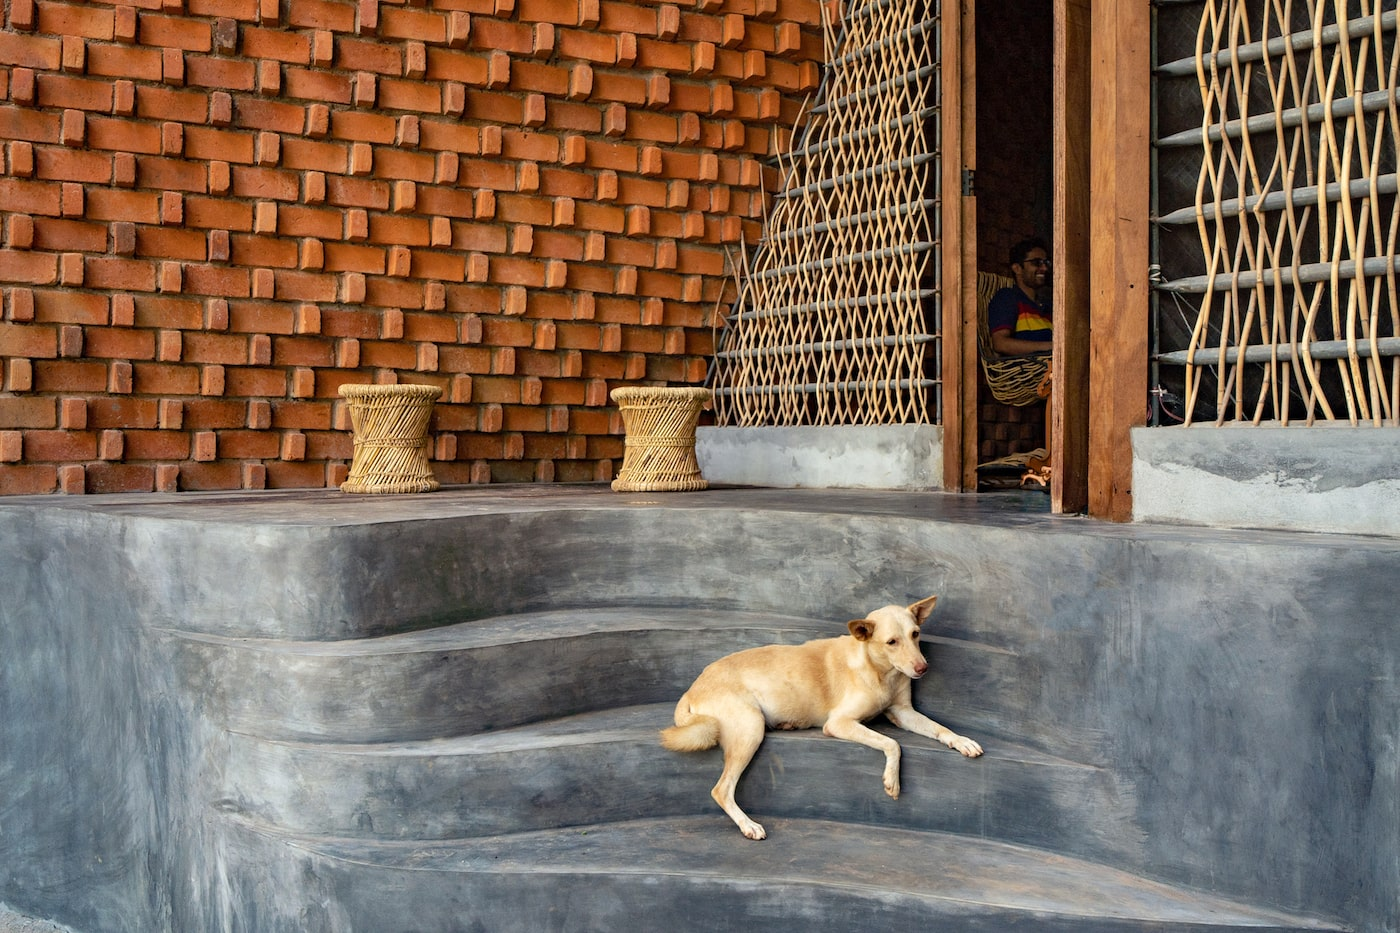 Dog sitting on concrete entry steps of brick home